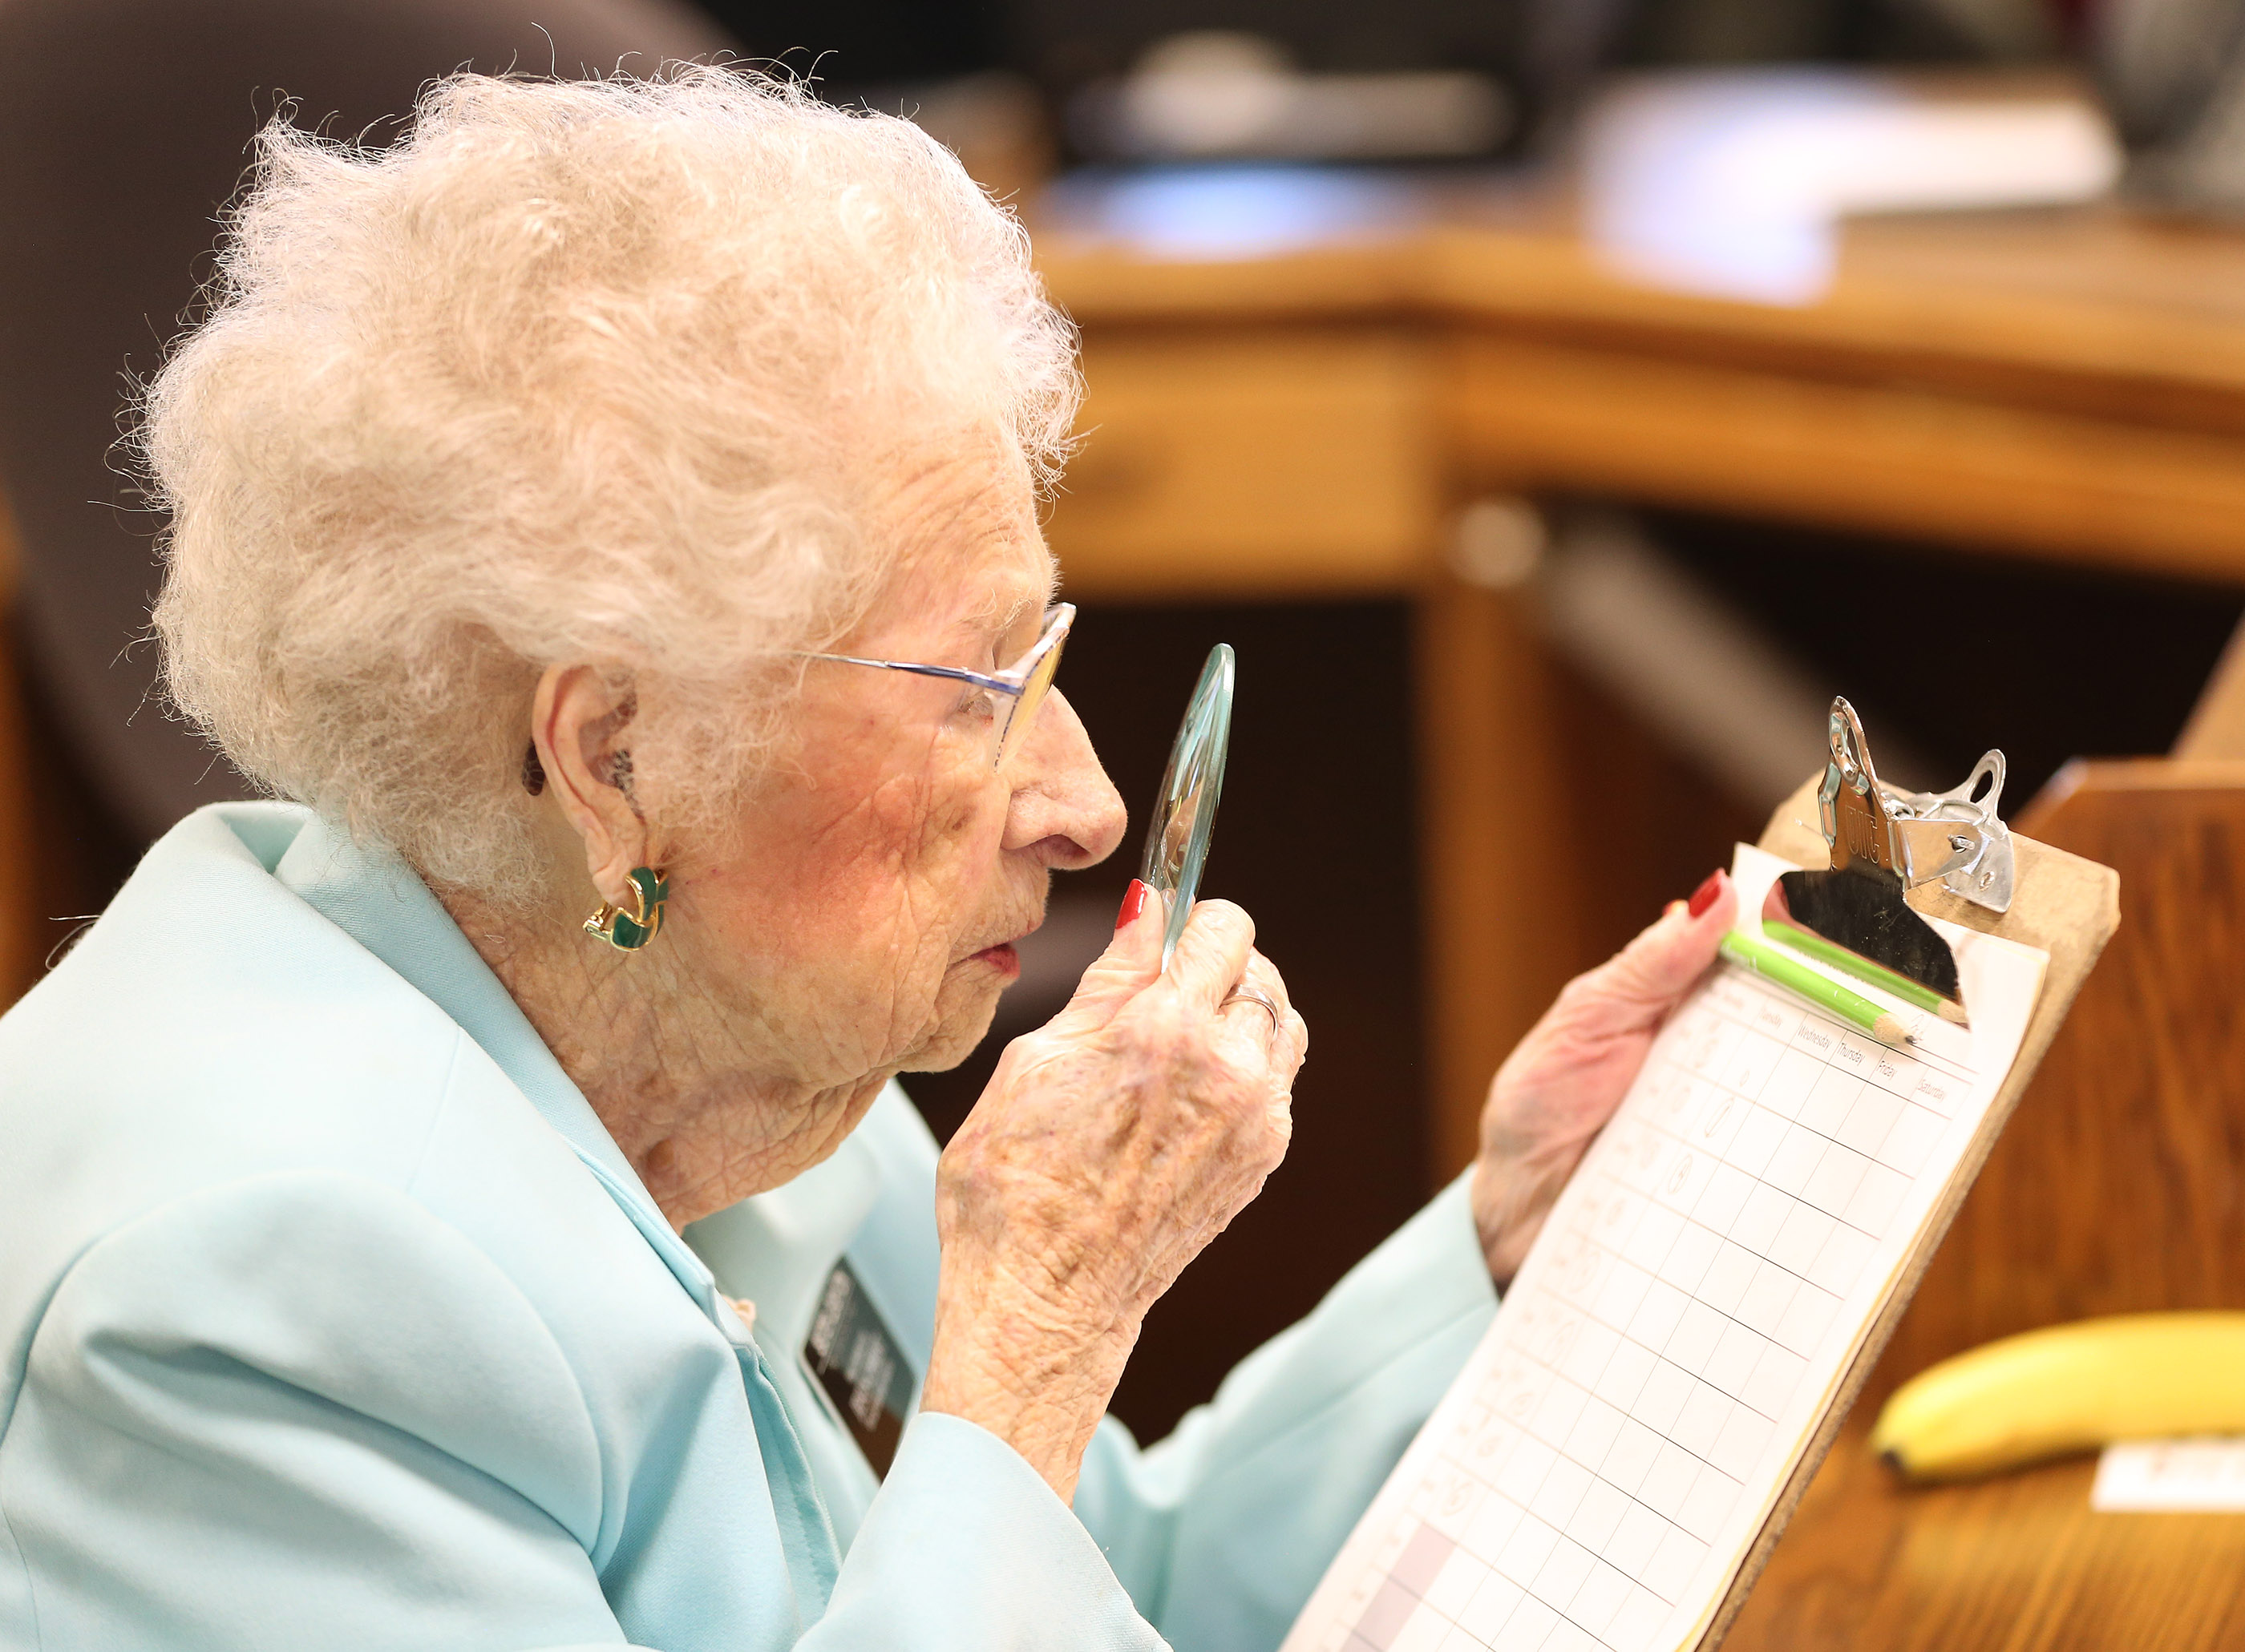 Nellie Leighton, 99, uses a magnifying glass for her missionary work at the Family History Library in Salt Lake City on Tuesday, Jan. 22, 2019. Leighton will celebrate her 100th birthday in February.